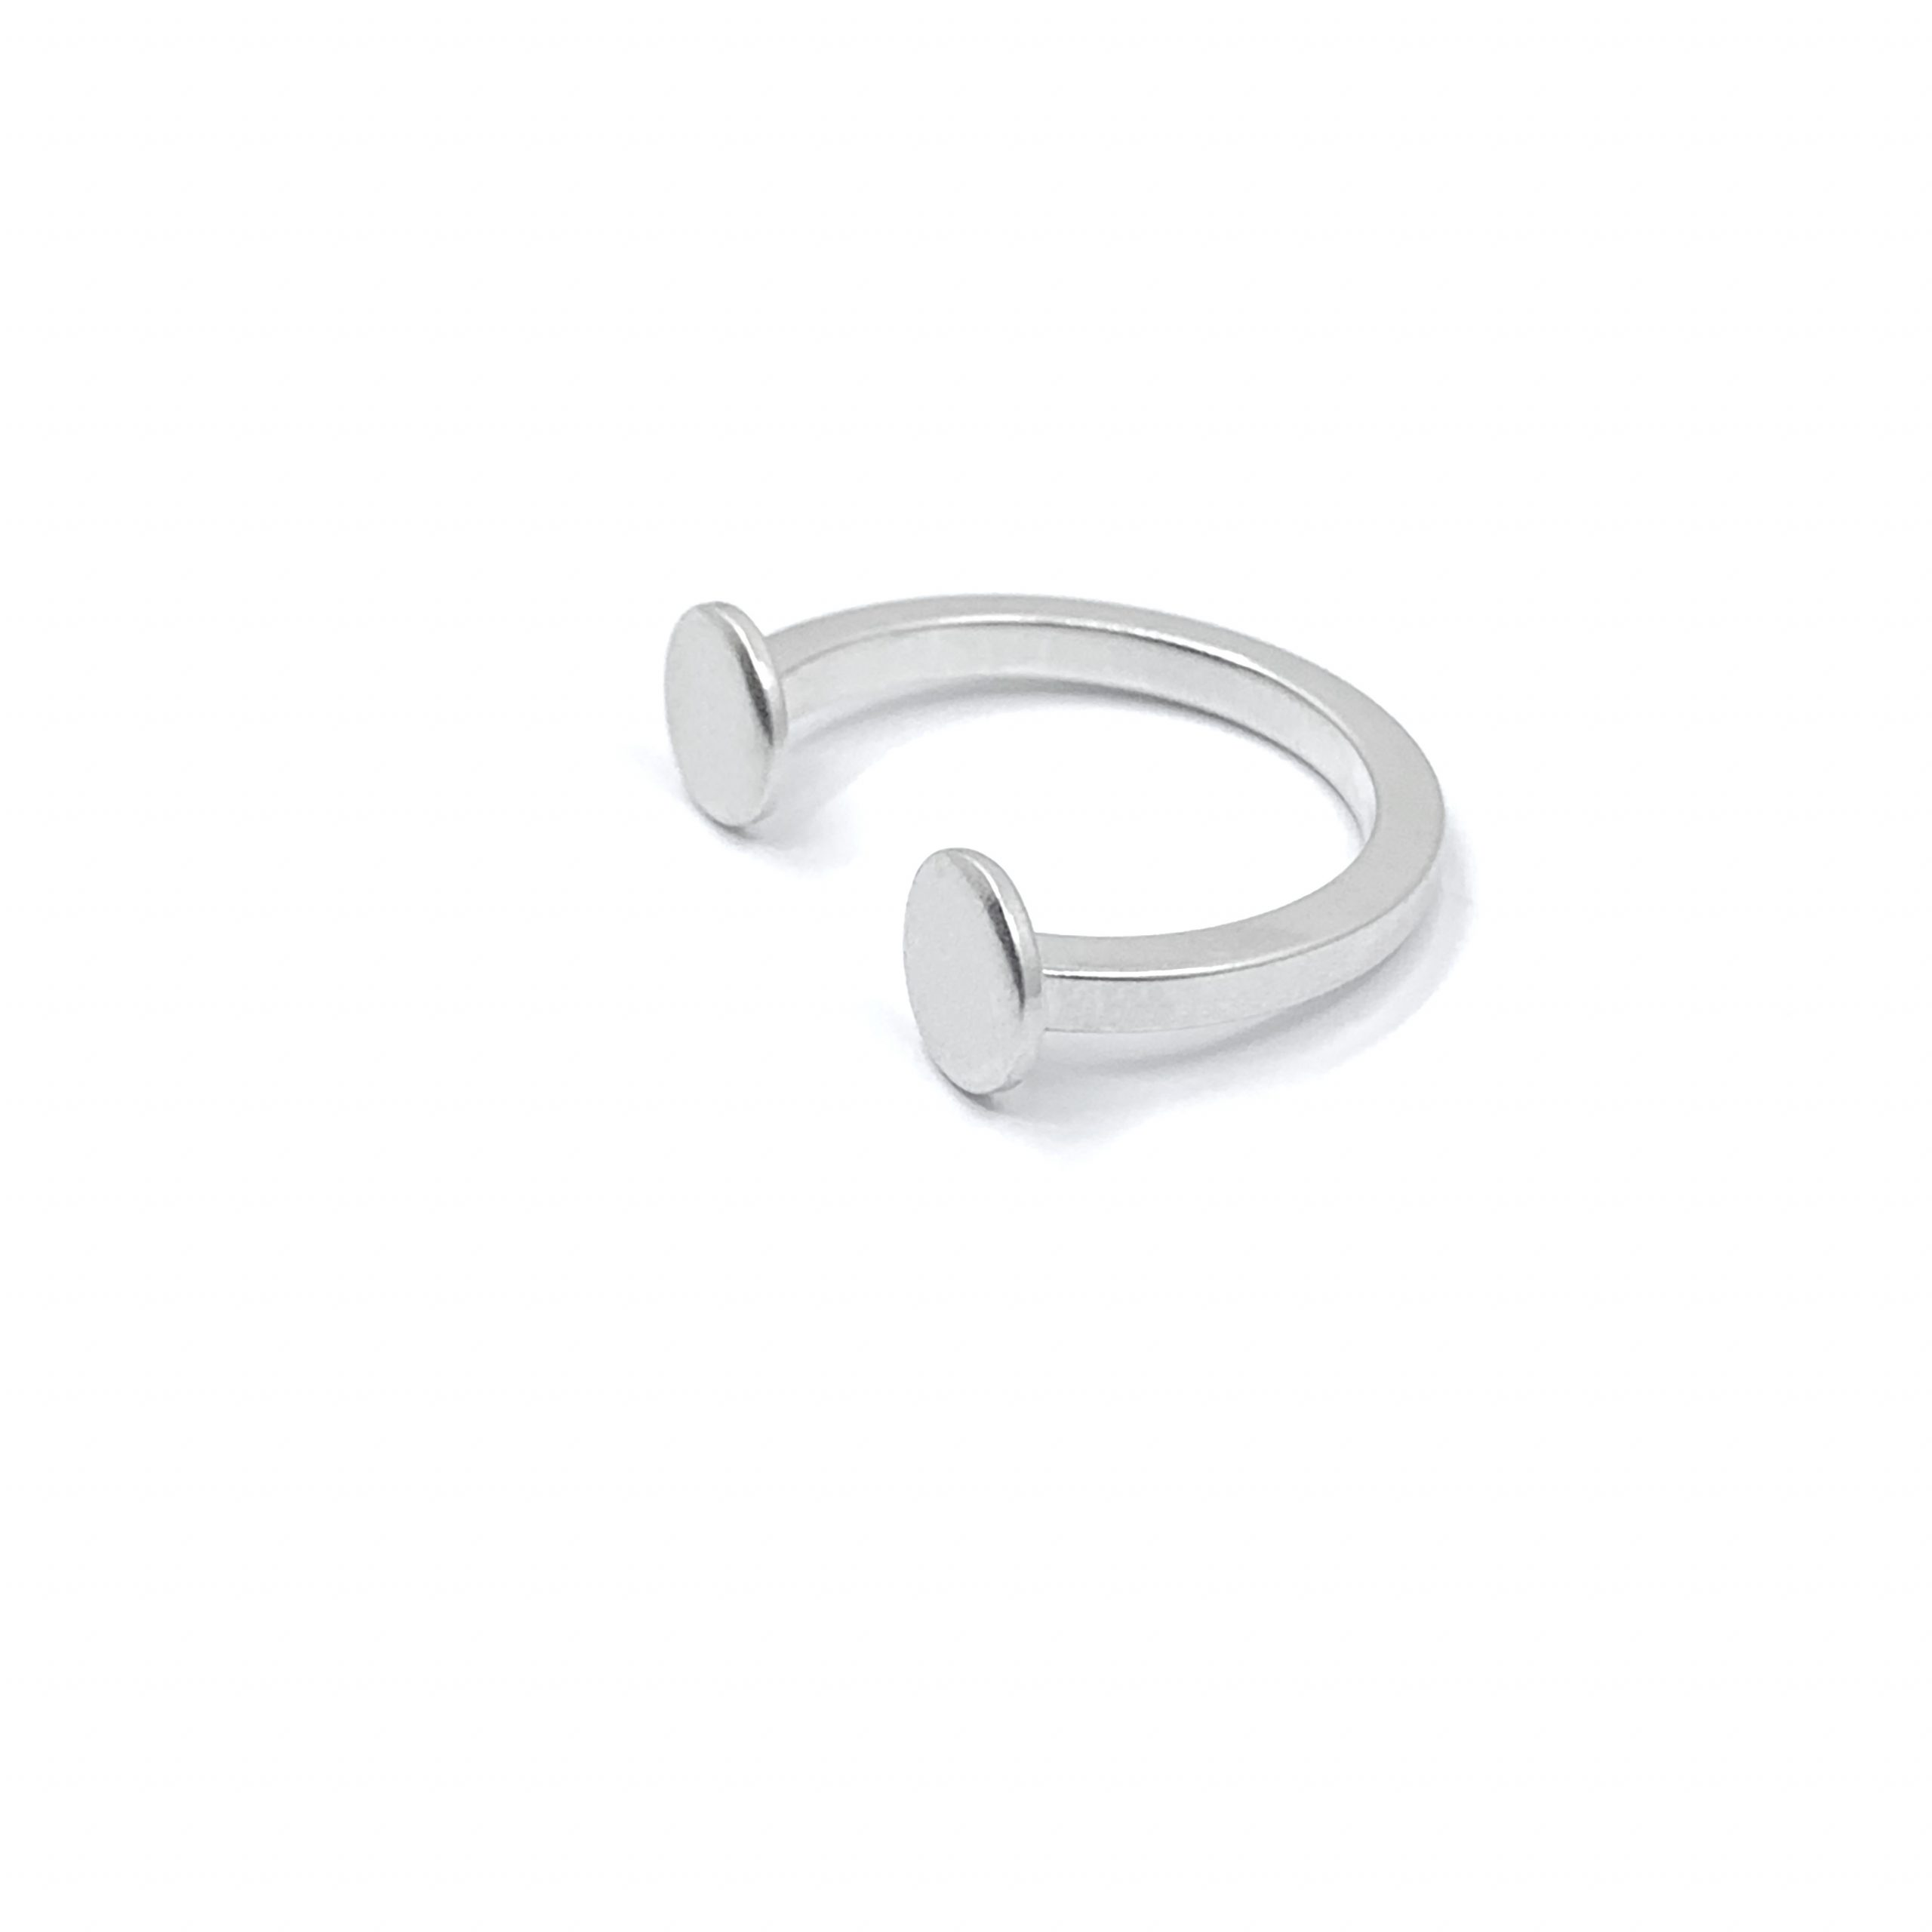 Solar system – tiny planets silver ring